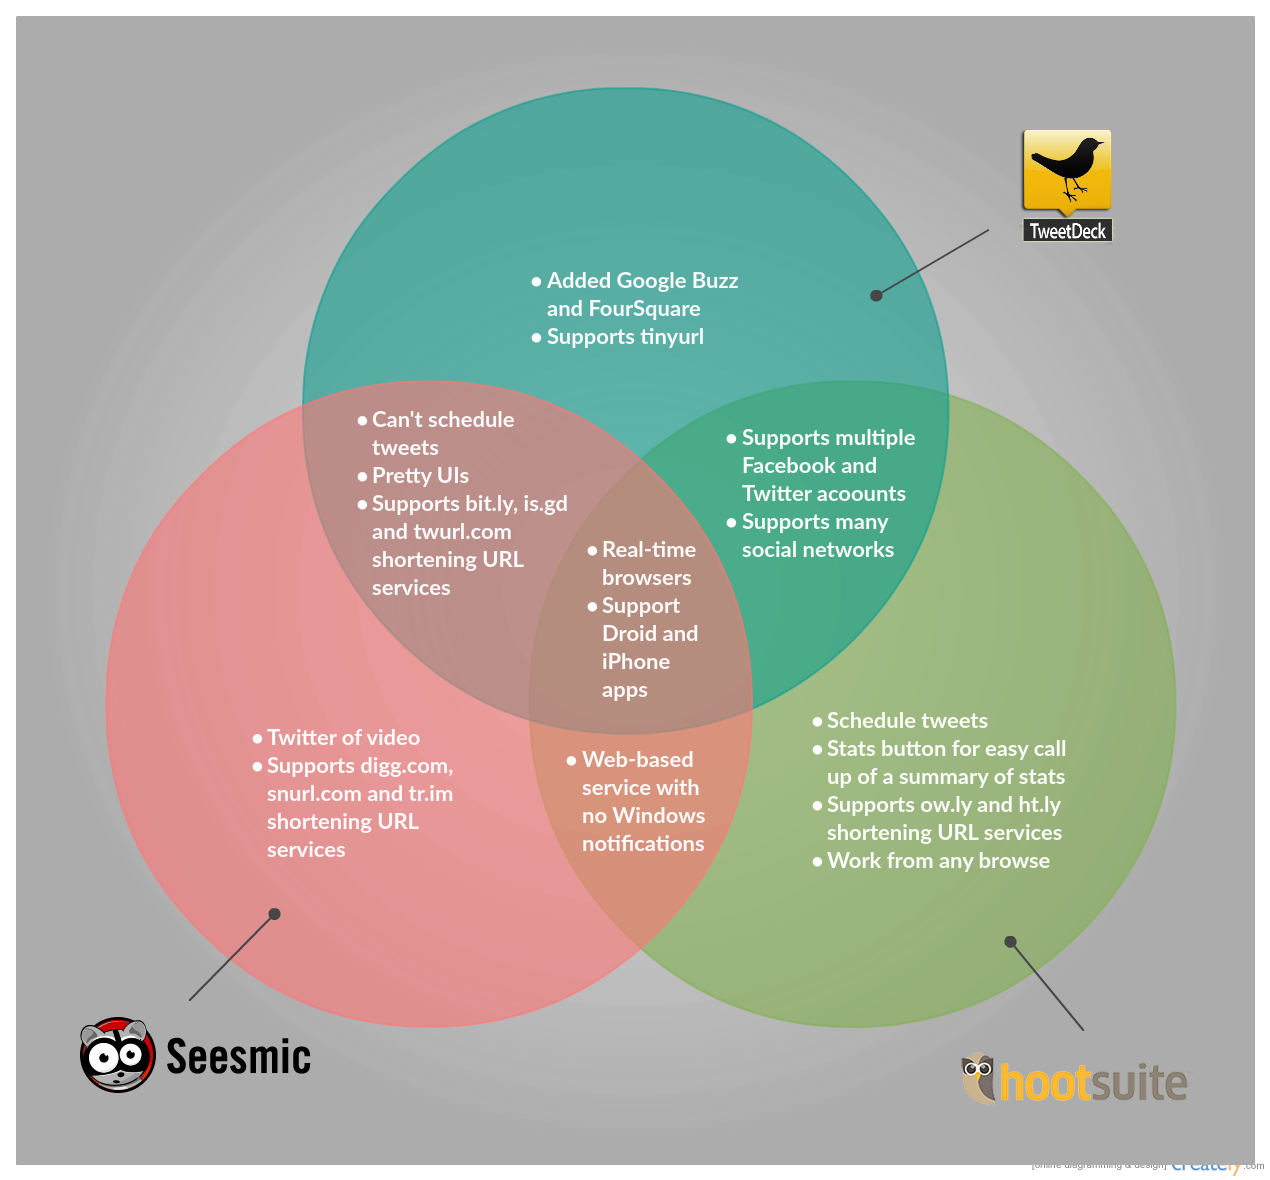 venn diagram templates to download or modify online, Modern powerpoint